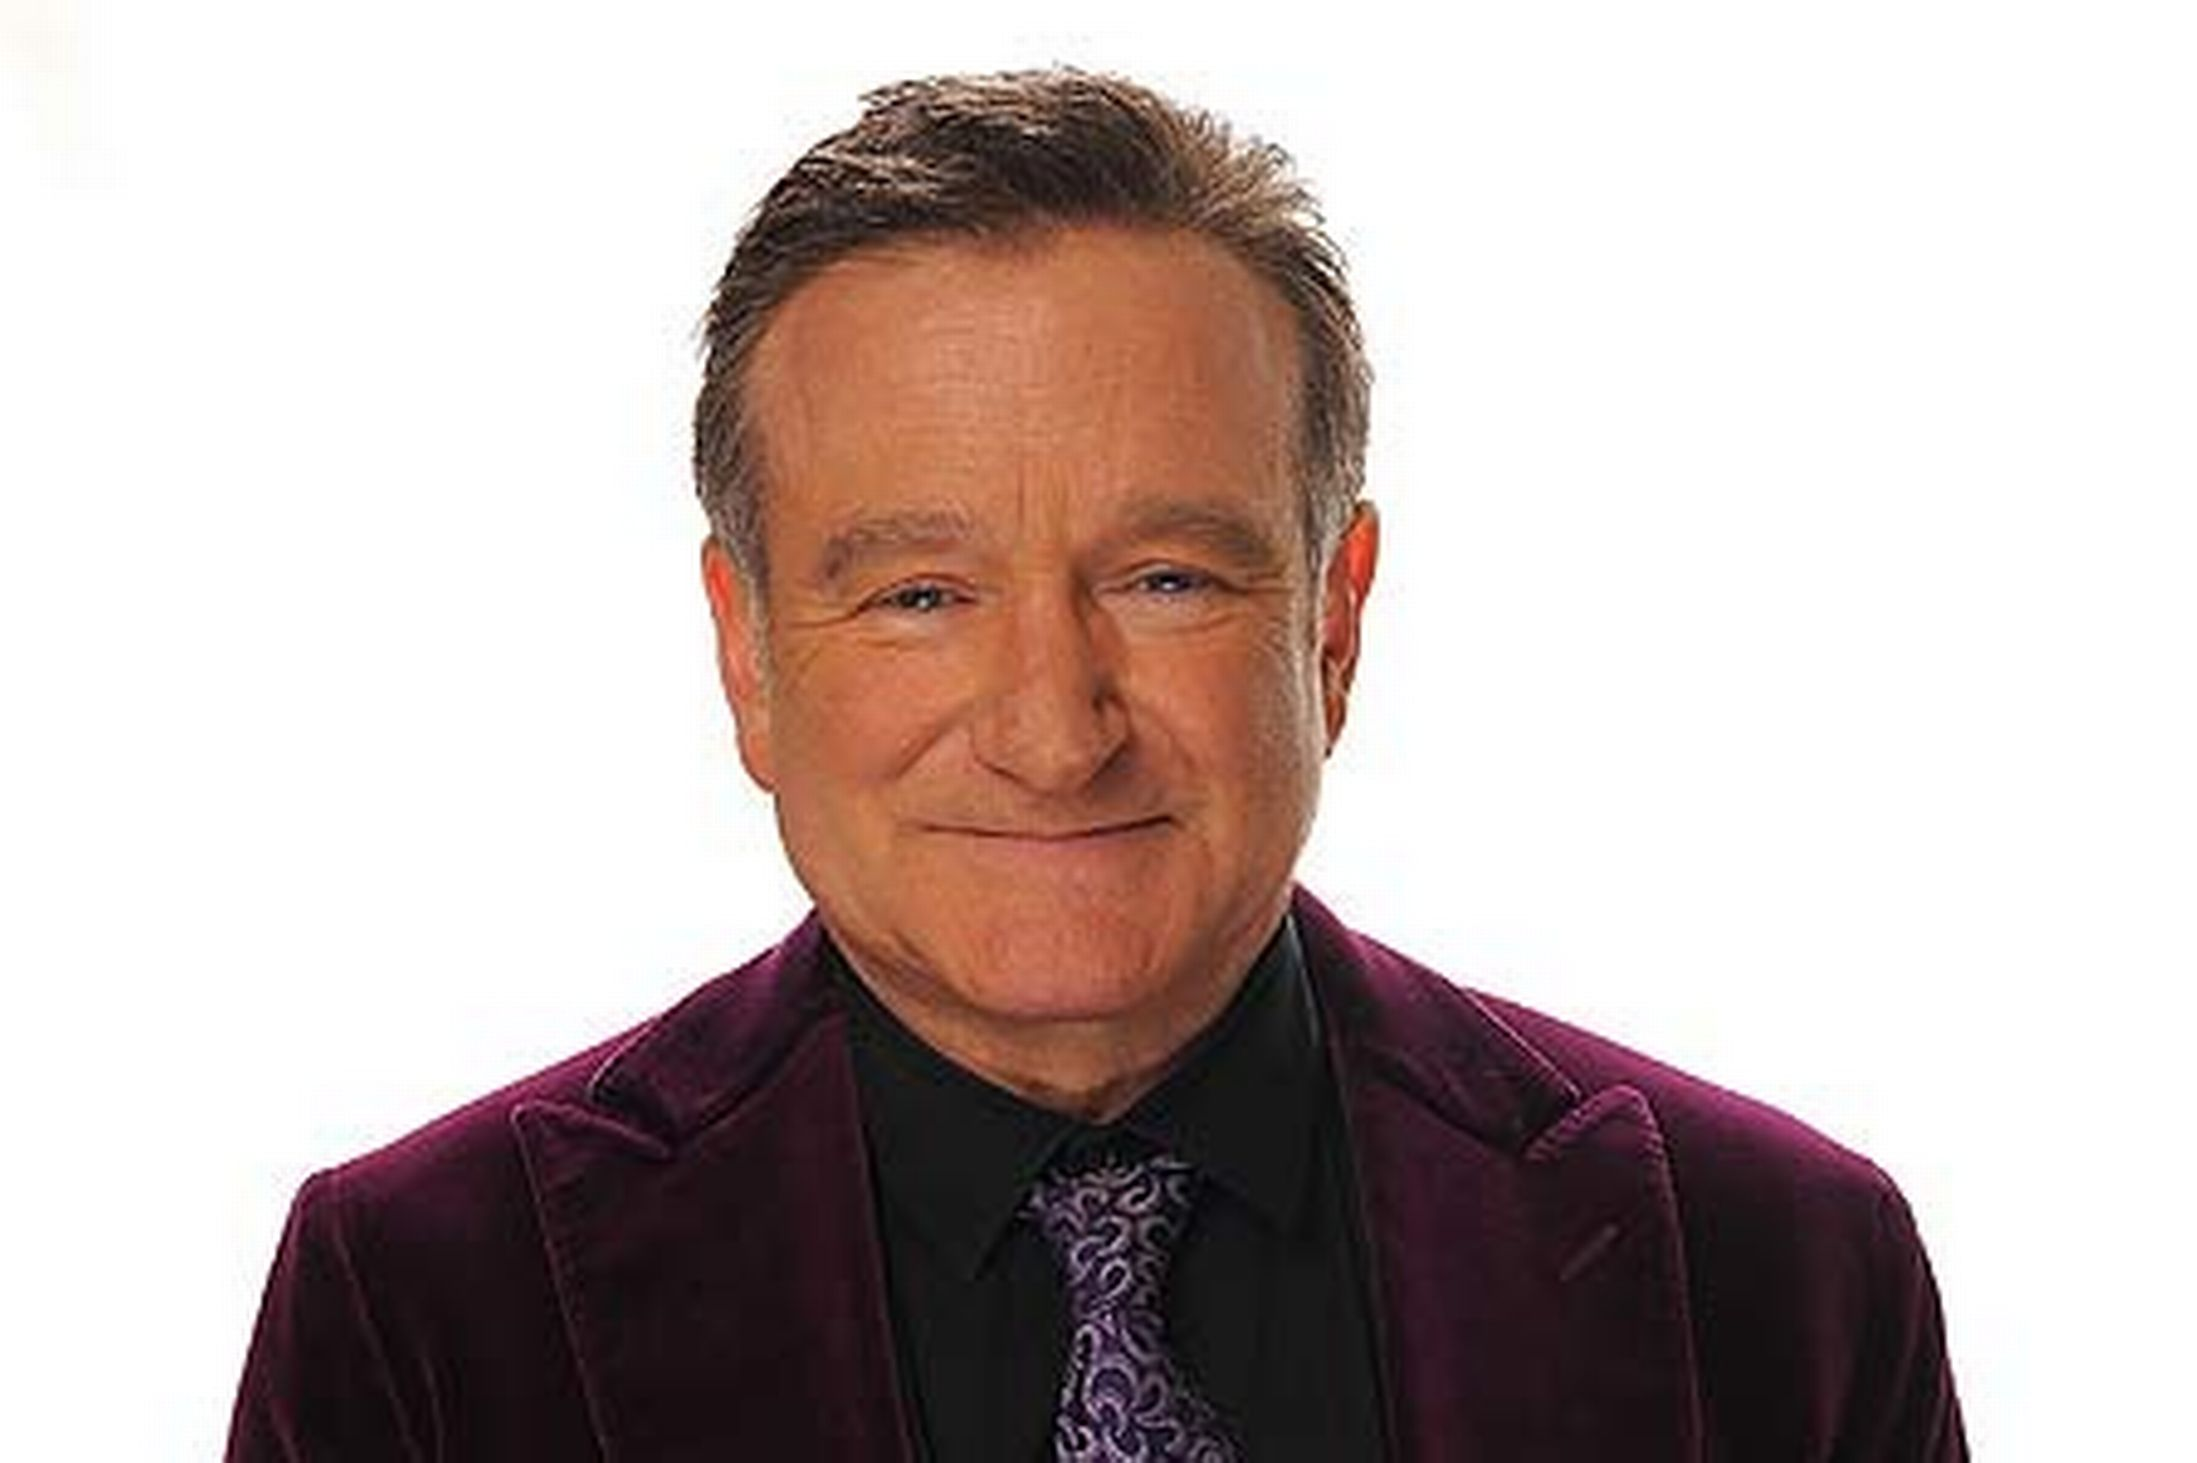 Robin Williams transferred the rights to use his image to a charity fund 03/31/2015 38